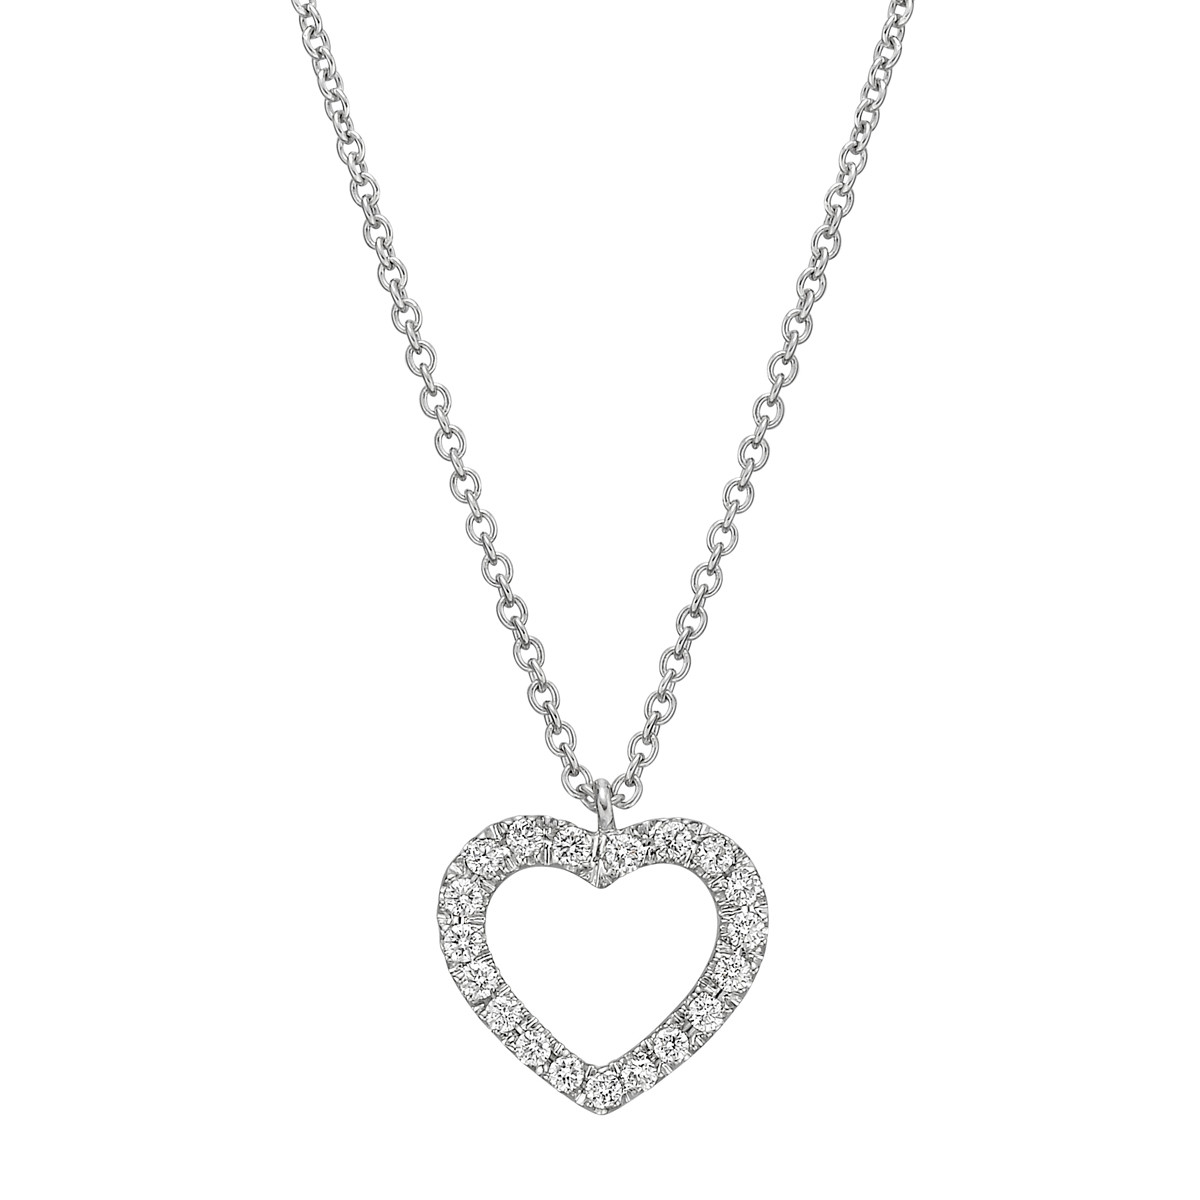 18k White Gold & Diamond Heart Pendant